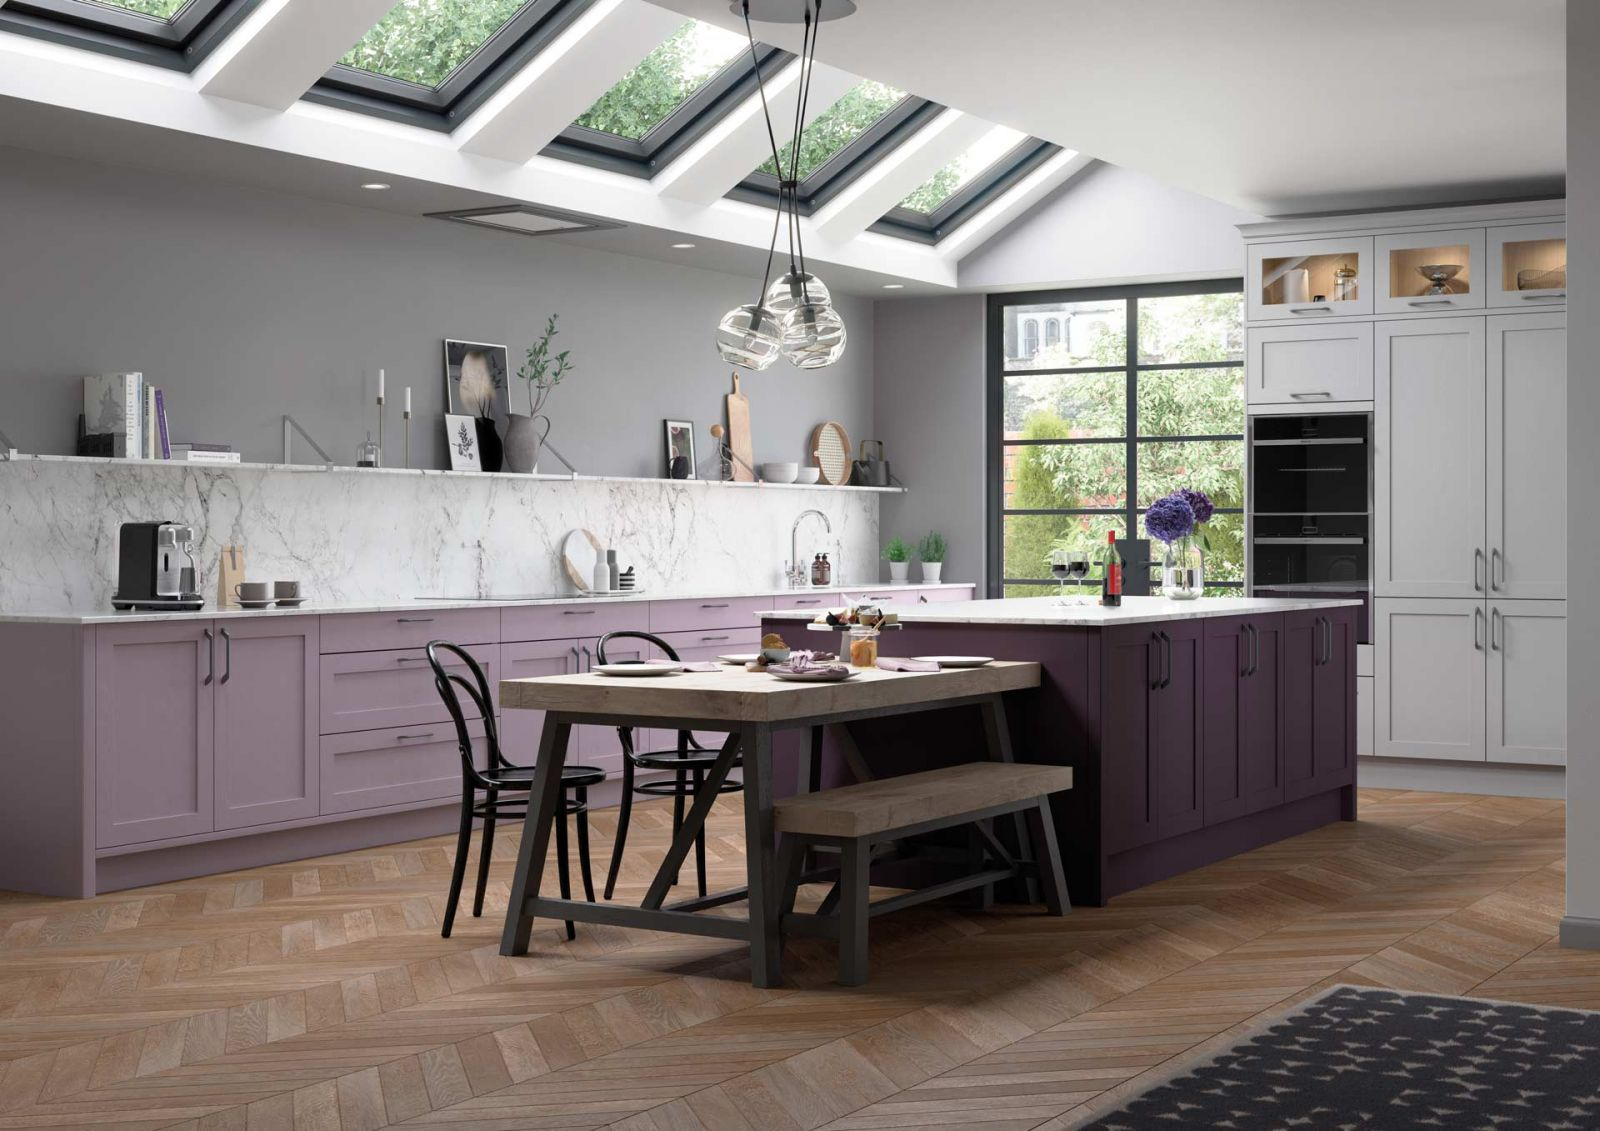 Wisteria New Lilac Kitchen Colour by Sigma 3 Kitchens